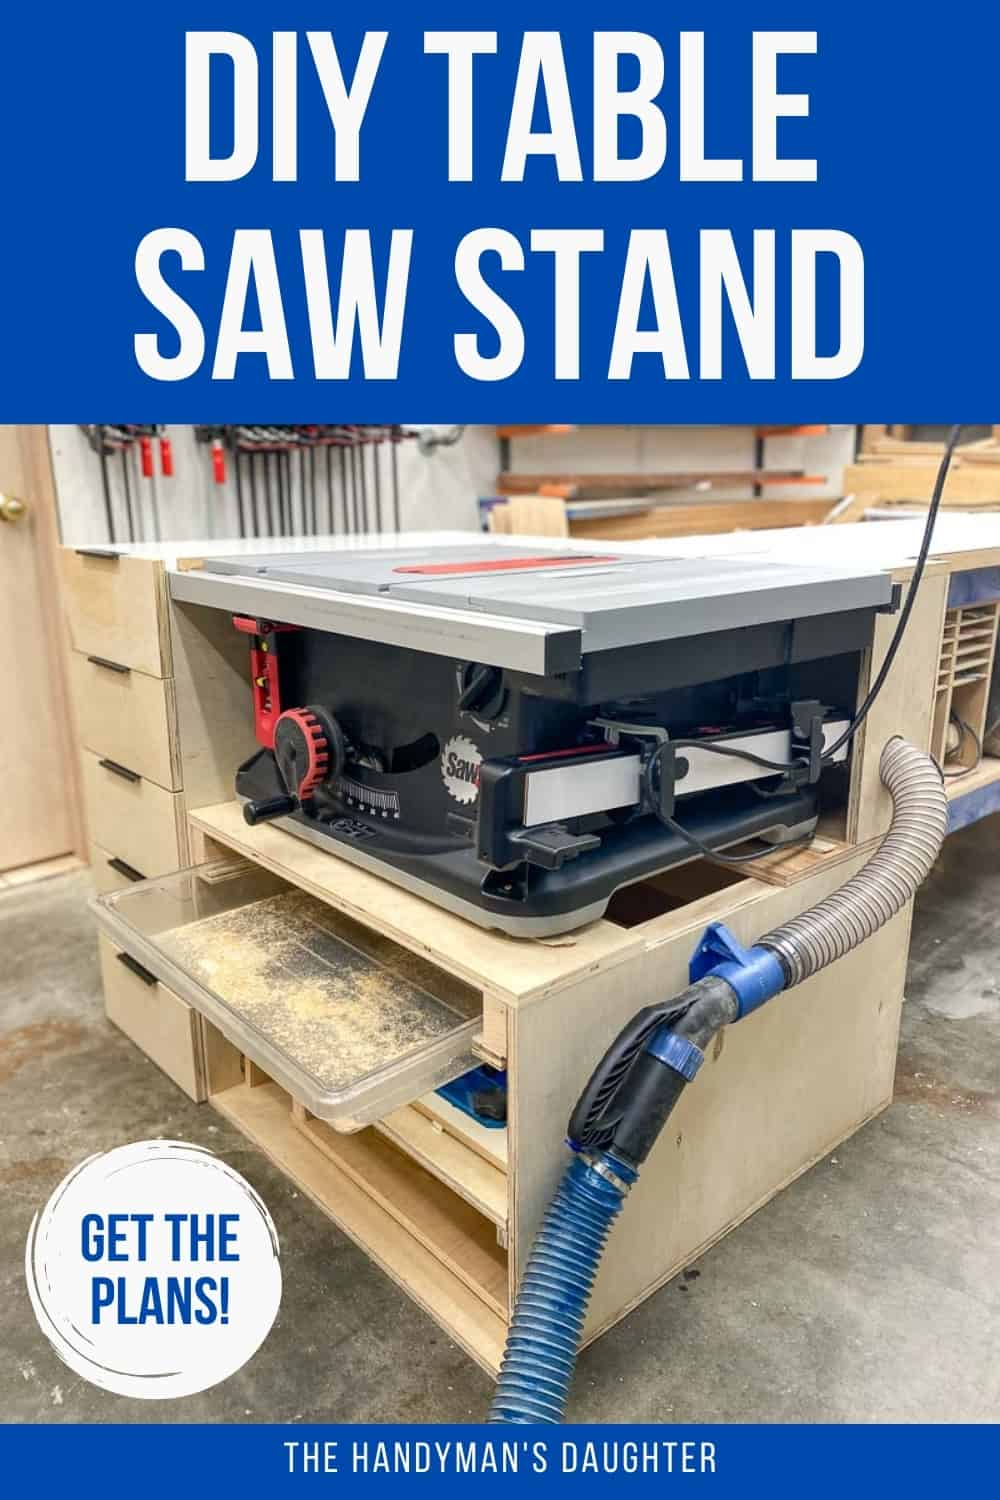 DIY table saw stand with plans